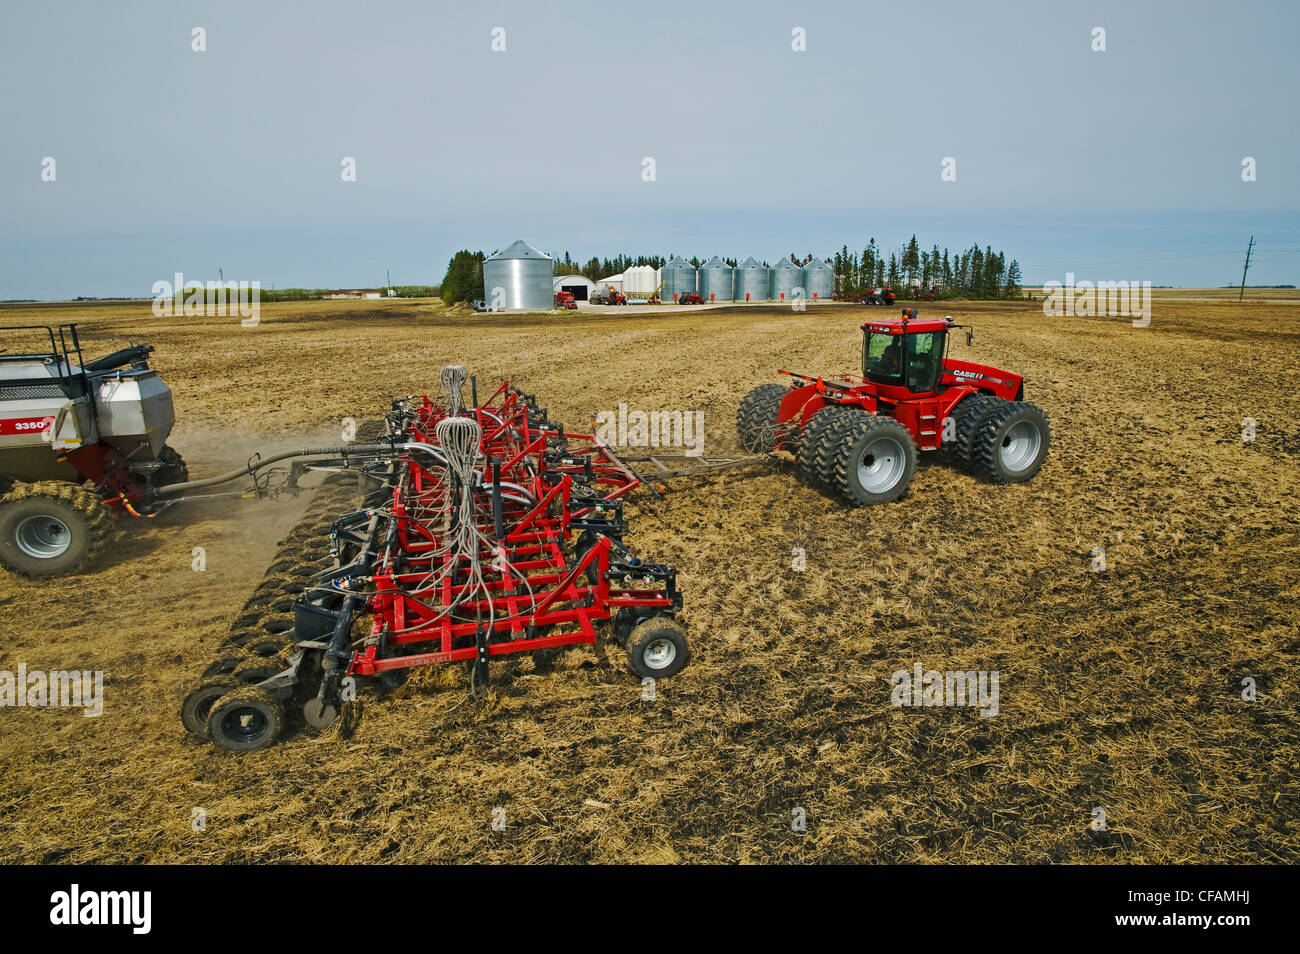 moving tractor and air till seeder planting - Stock Image